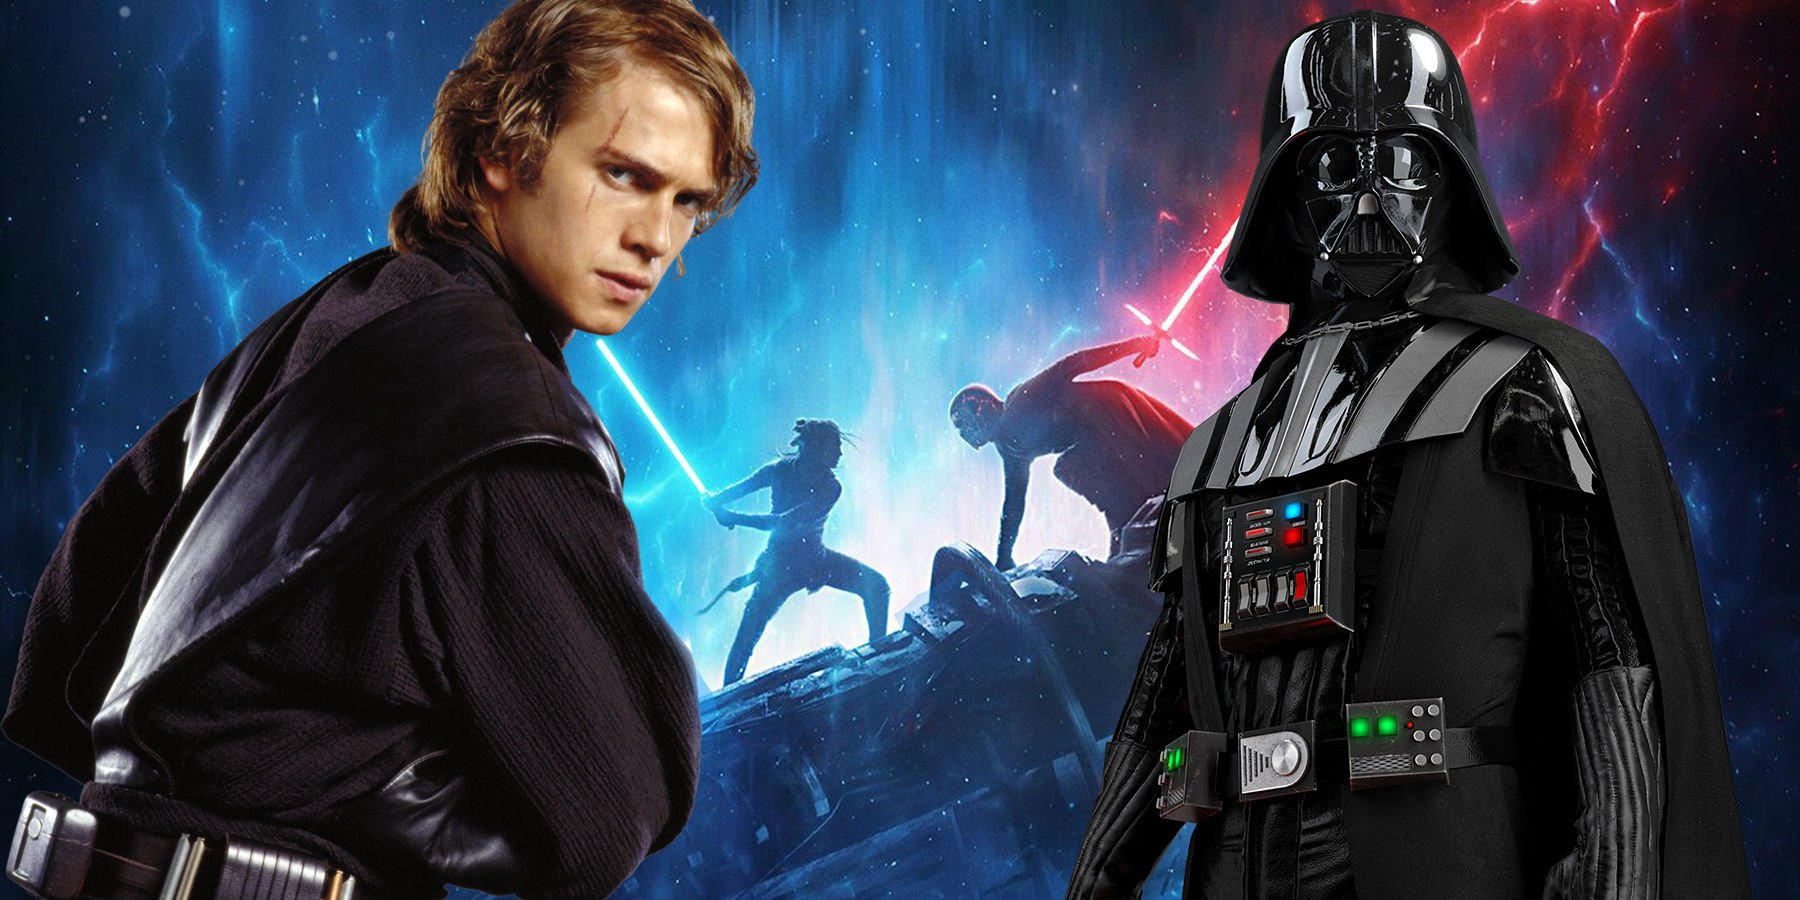 Star Wars 9: Everything We Know About Darth Vader's Presence